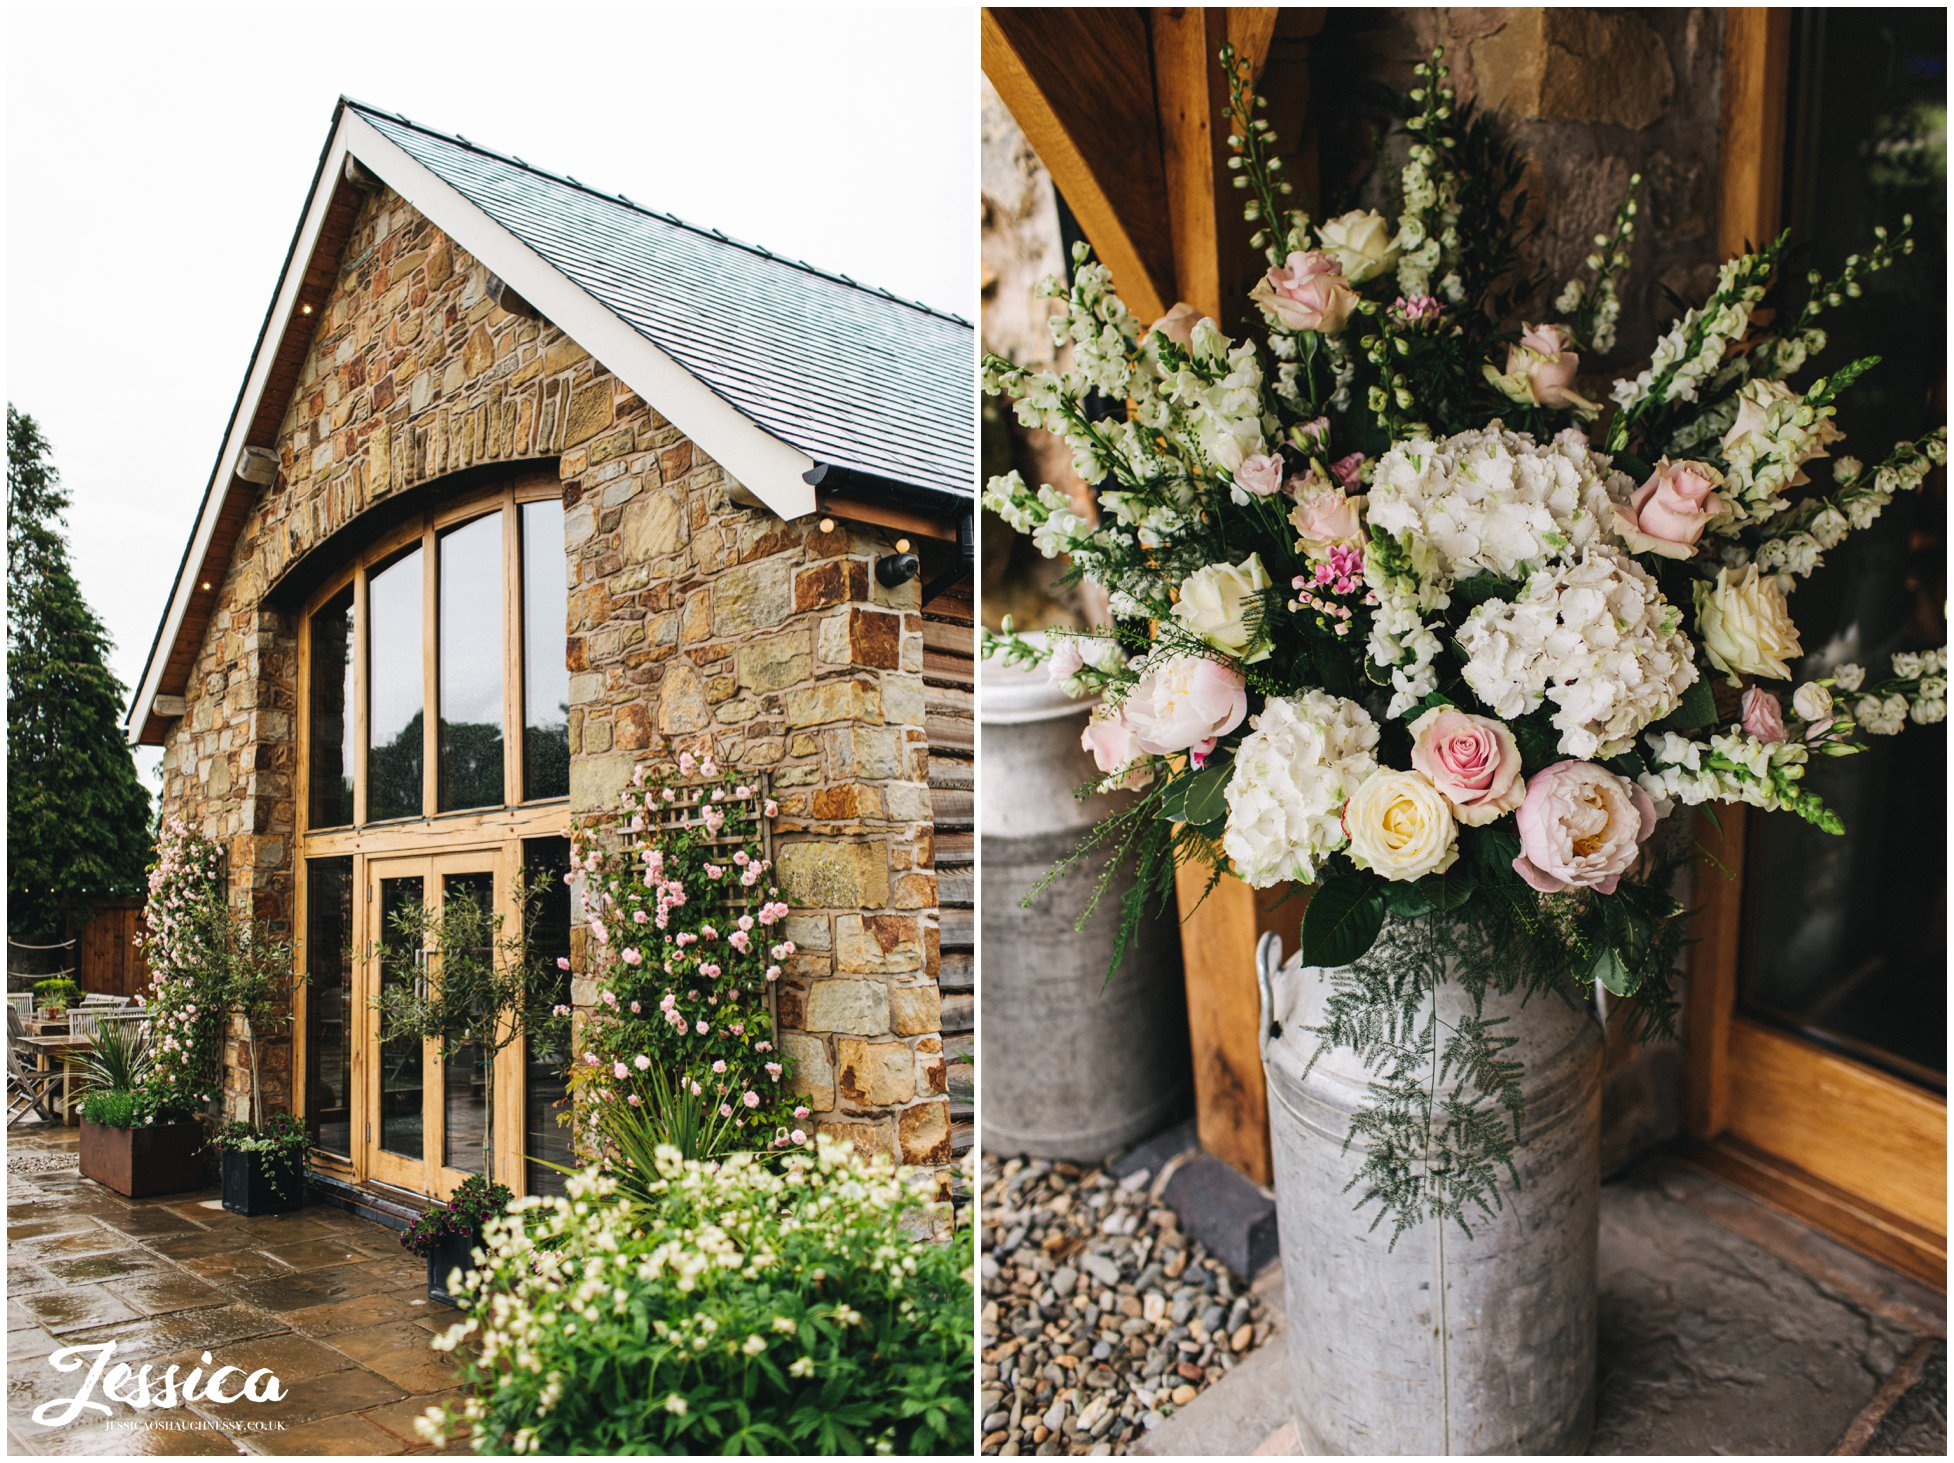 flowers decorate the barn wedding venue